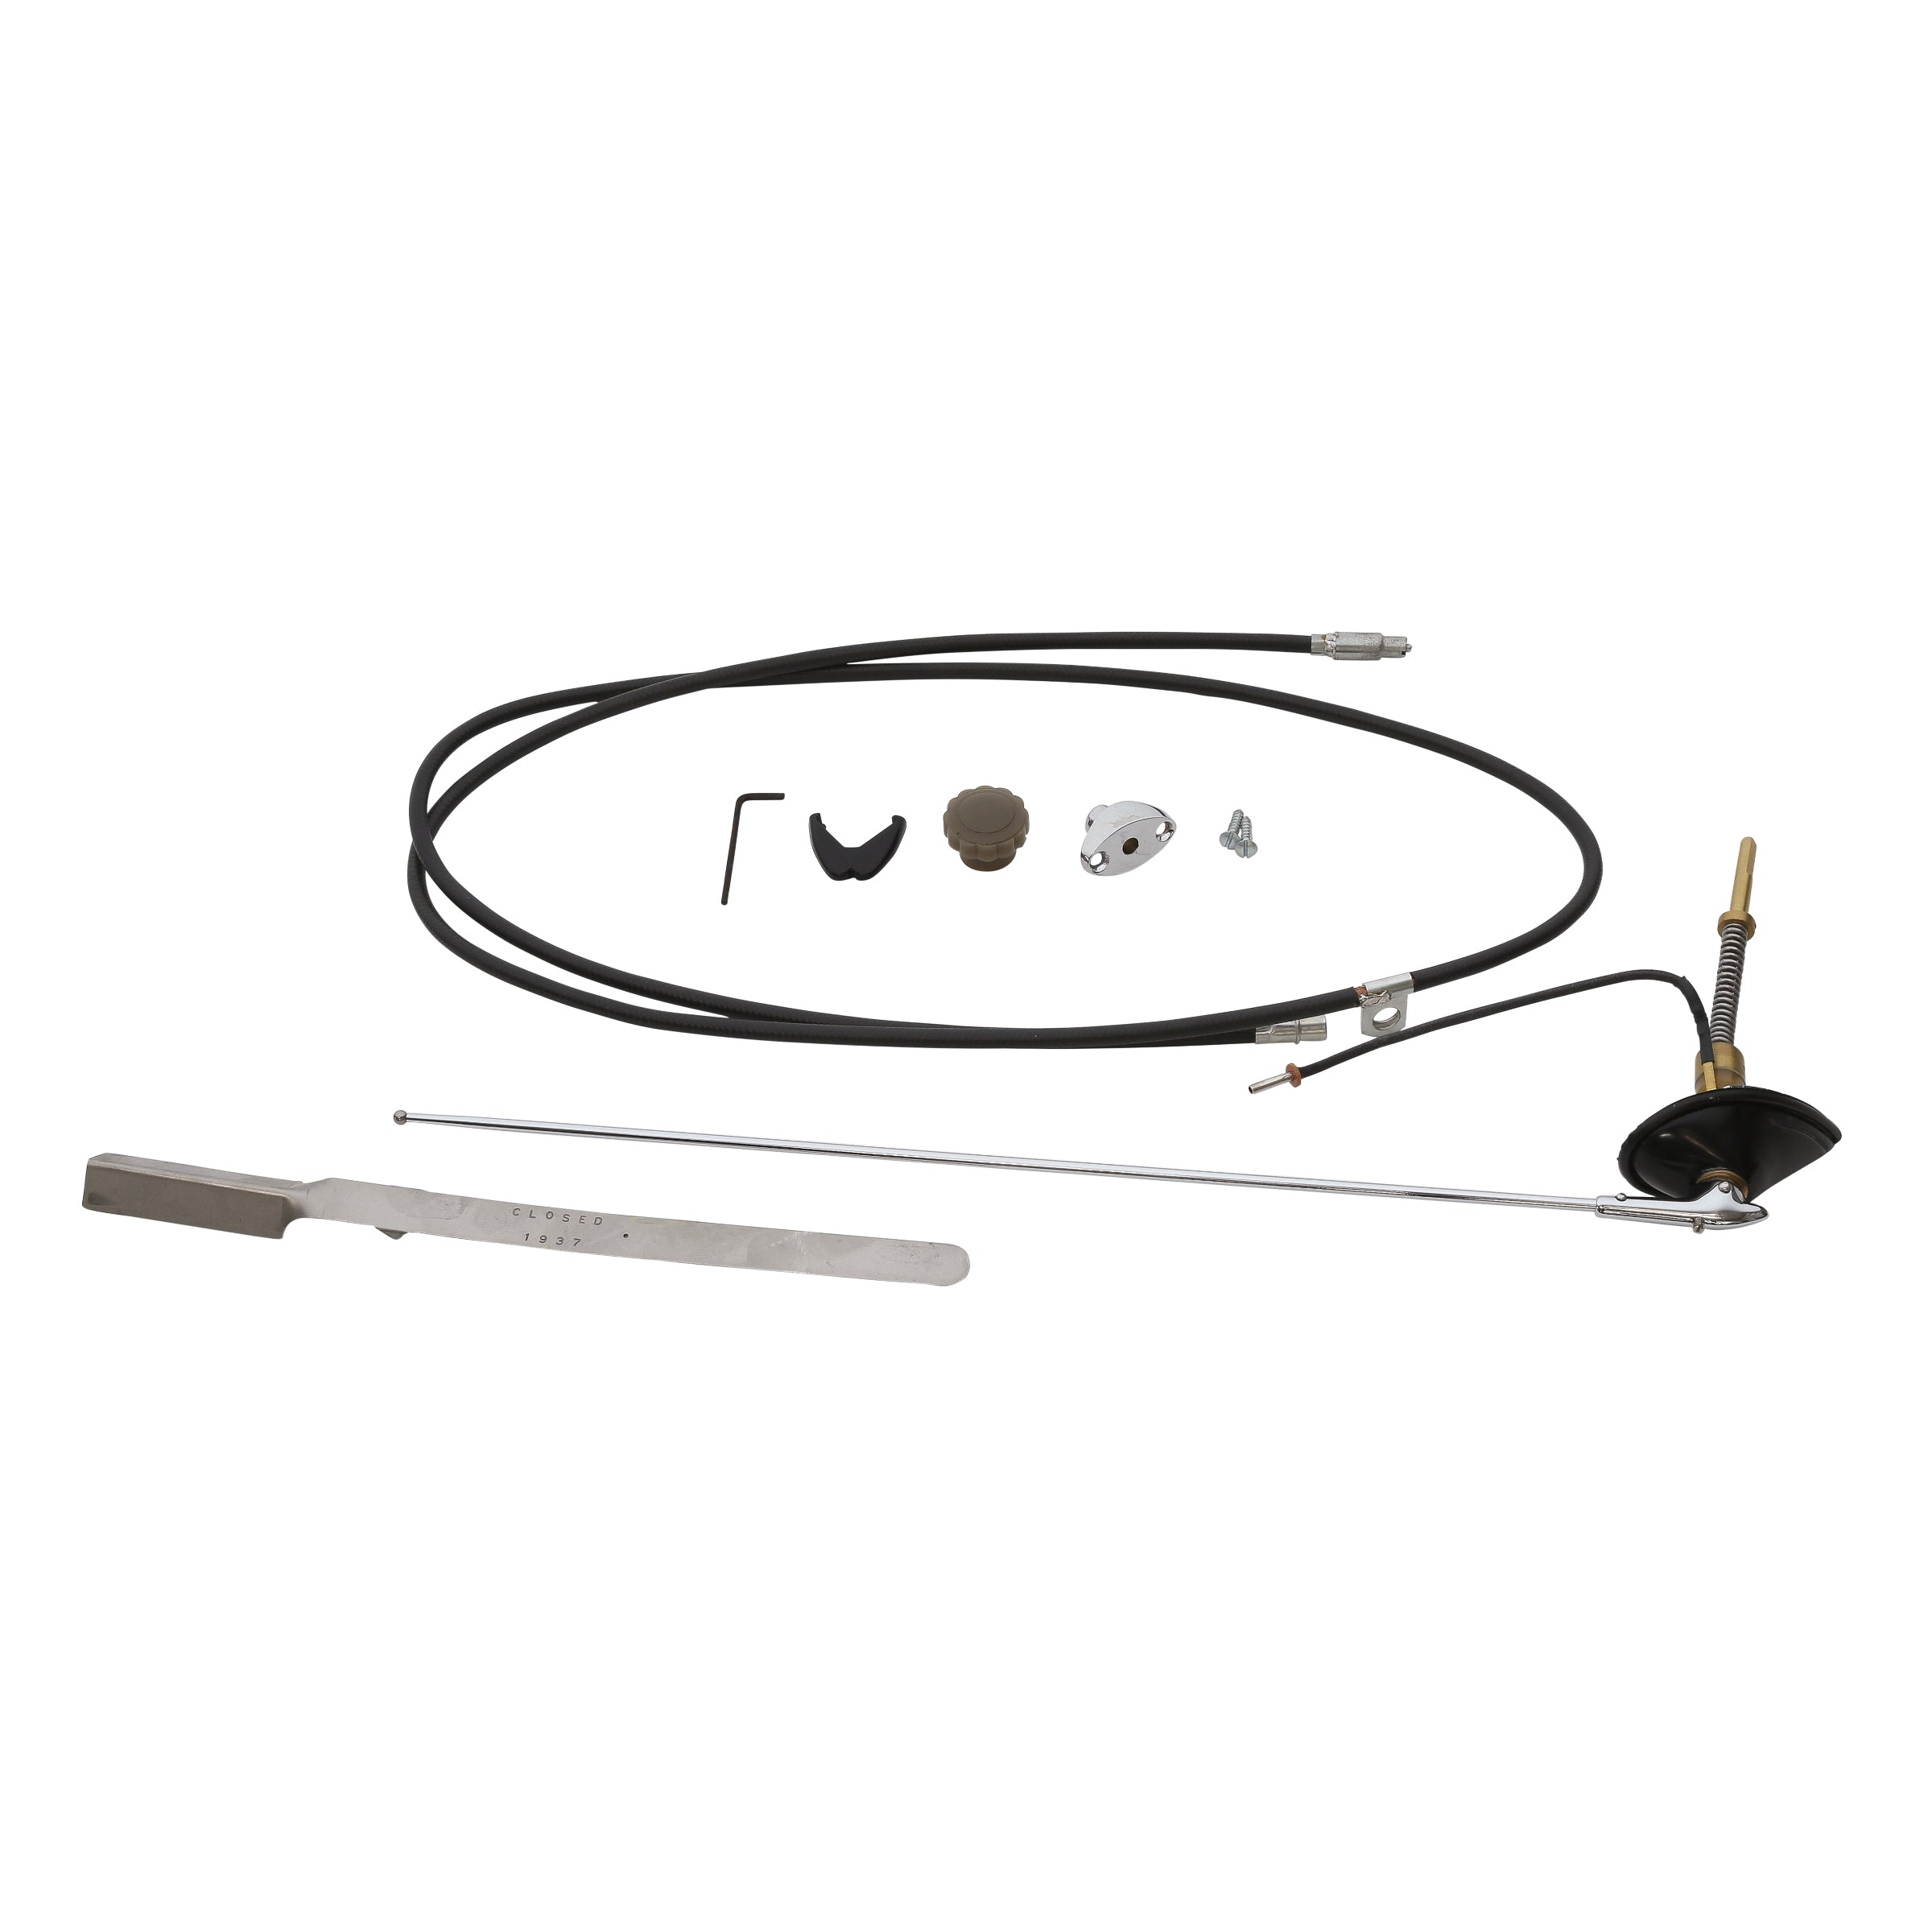 Antenna Kit • 1937 Standard Ford Closed Car